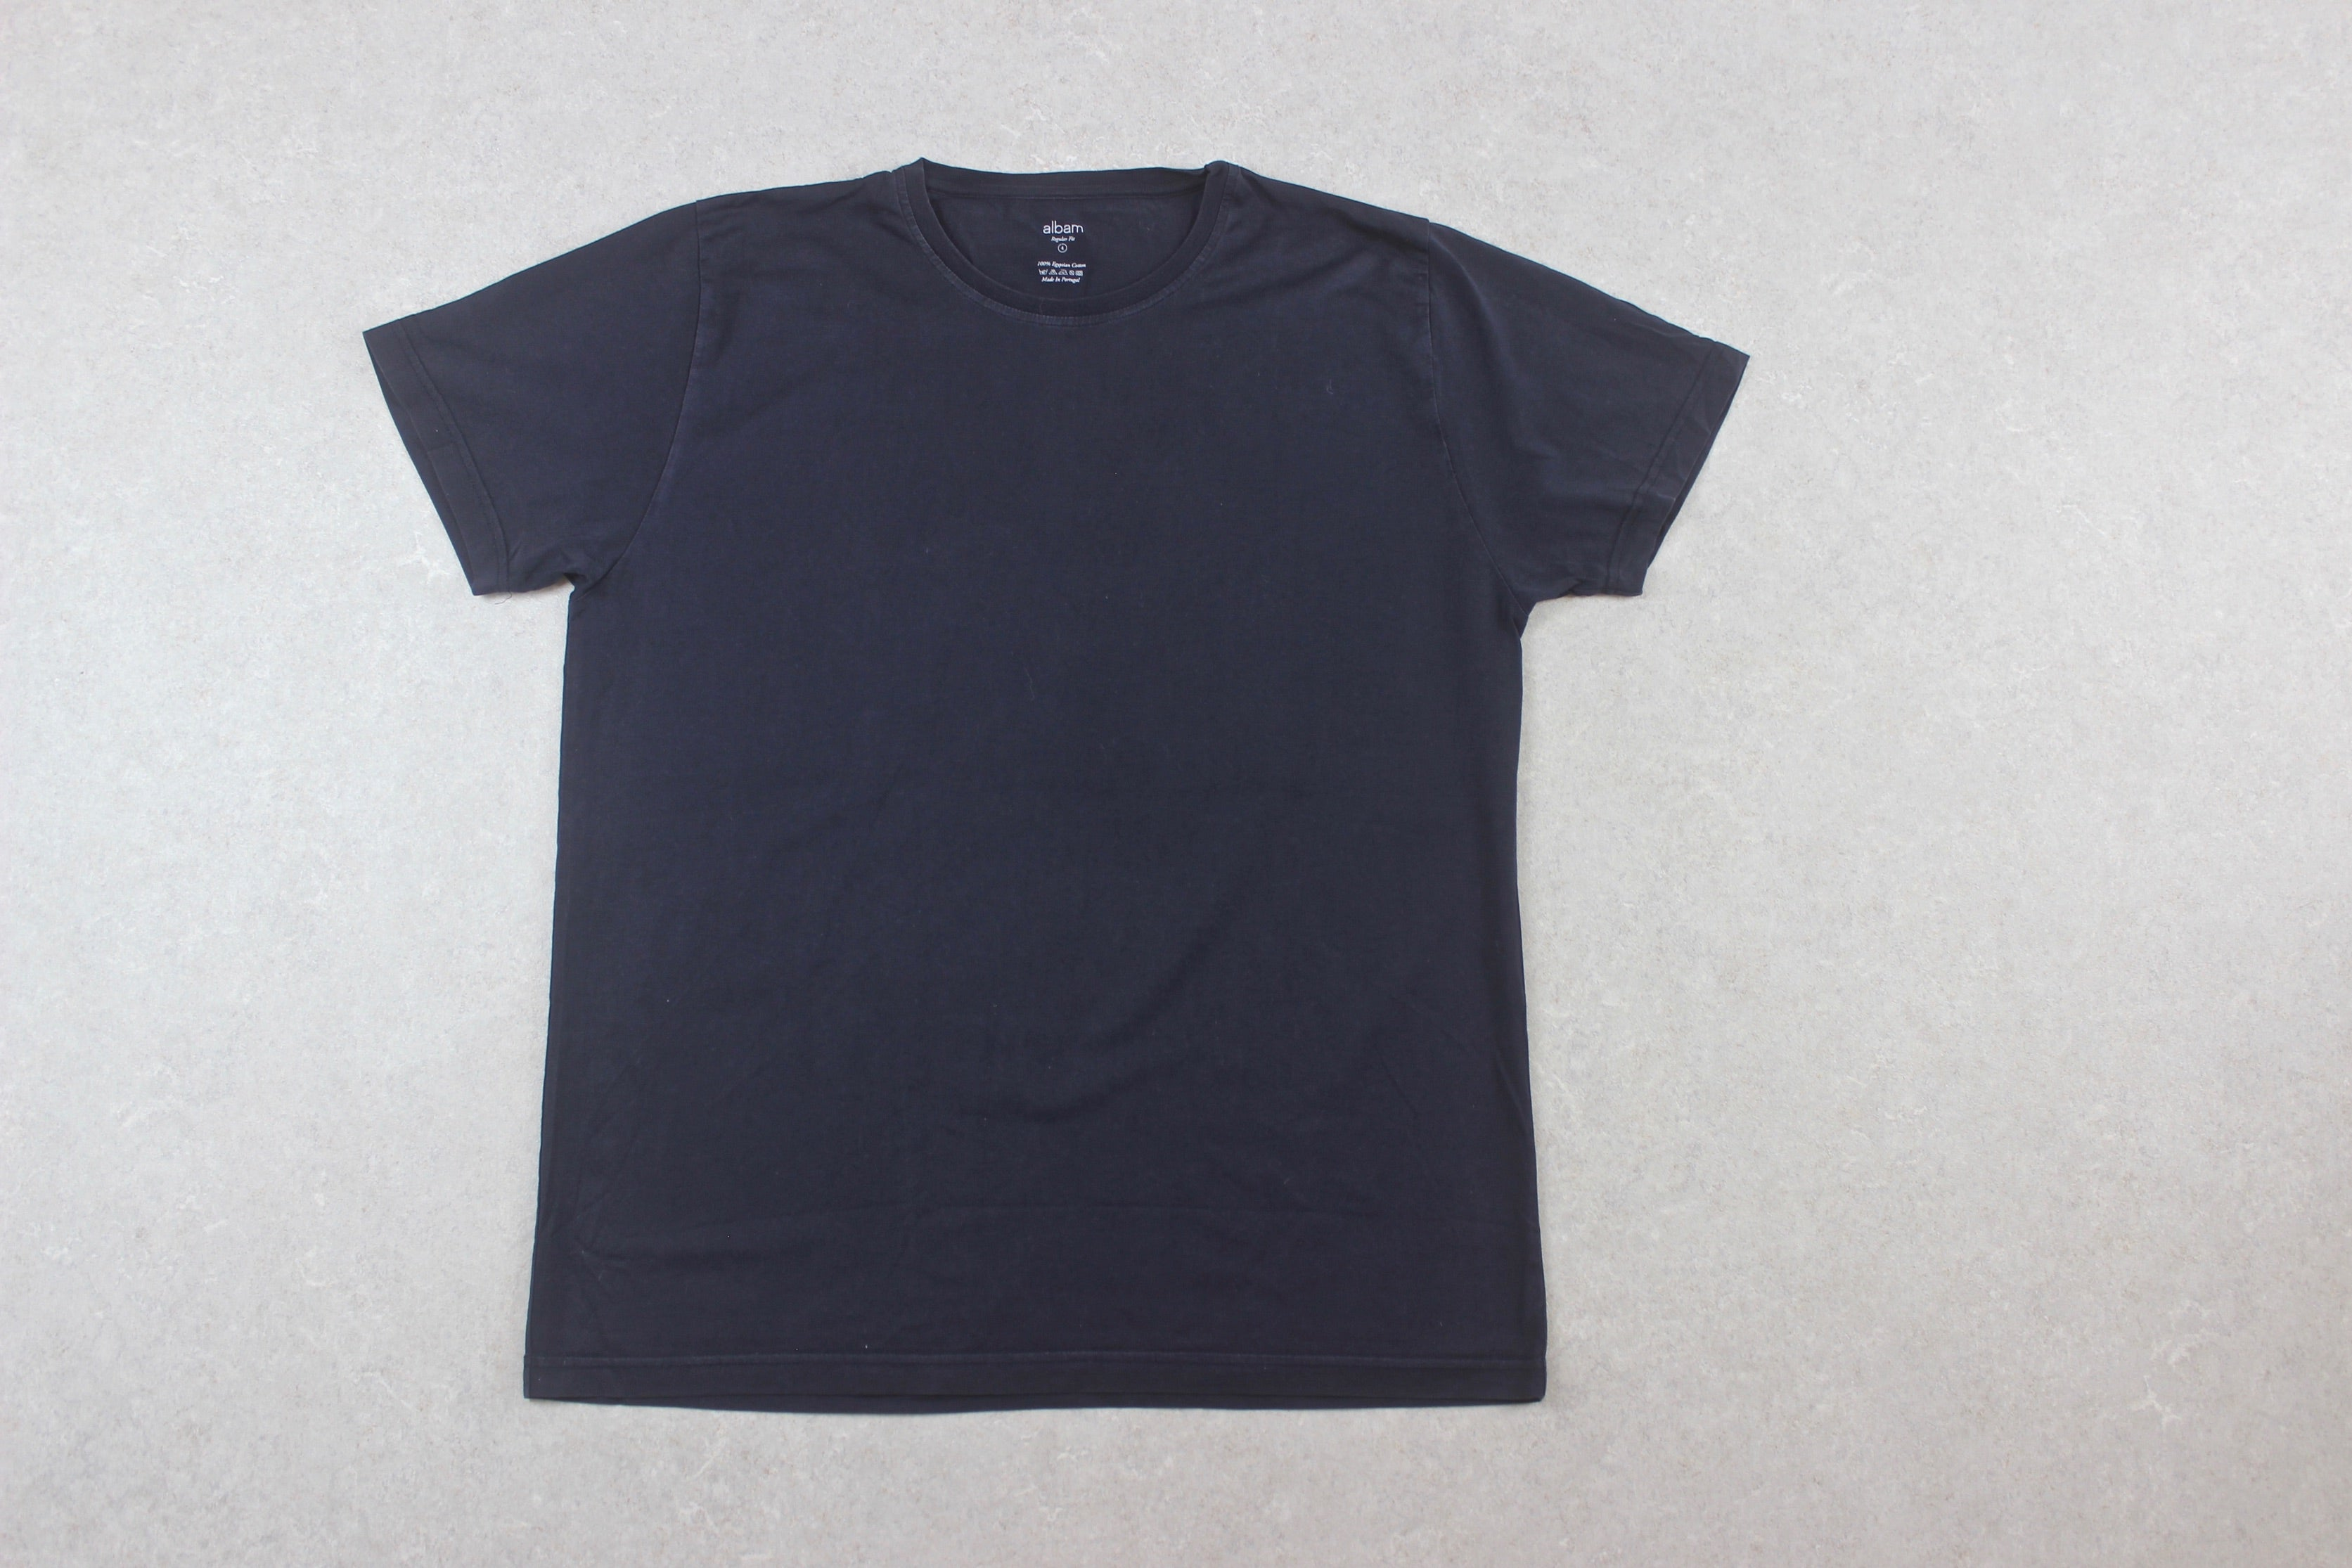 Albam - T Shirt - Navy Blue - 4/Extra Large